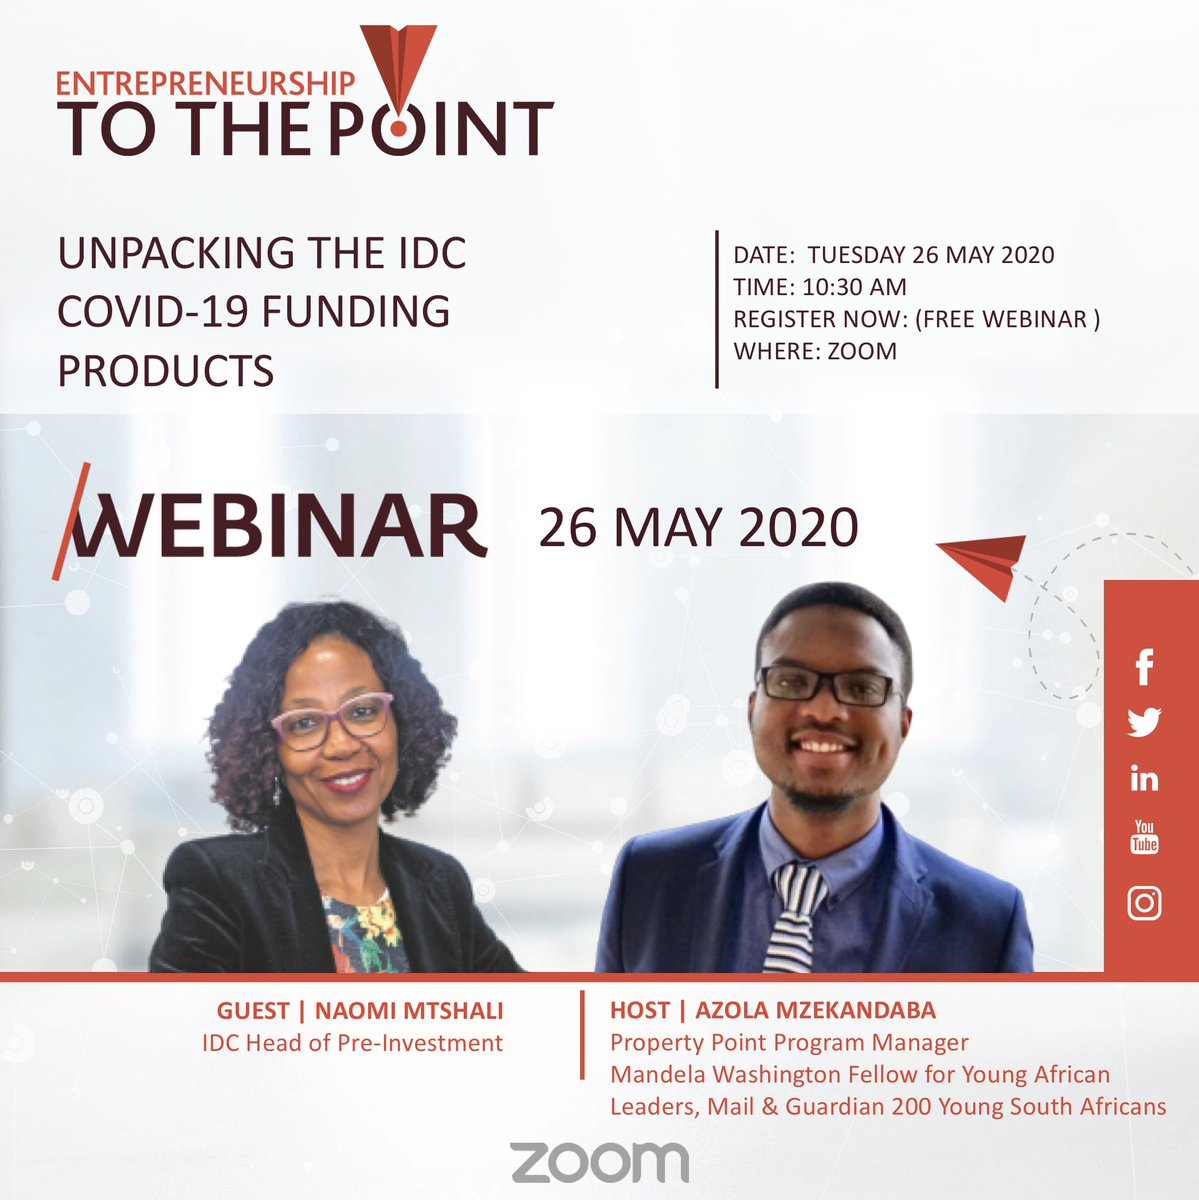 eTTP #INFORM Session with @IDCSouthAfrica   Are you interested to know what support the IDC has made available for entrepreneurs during COVID-19? https://t.co/WmwtKjIQEq